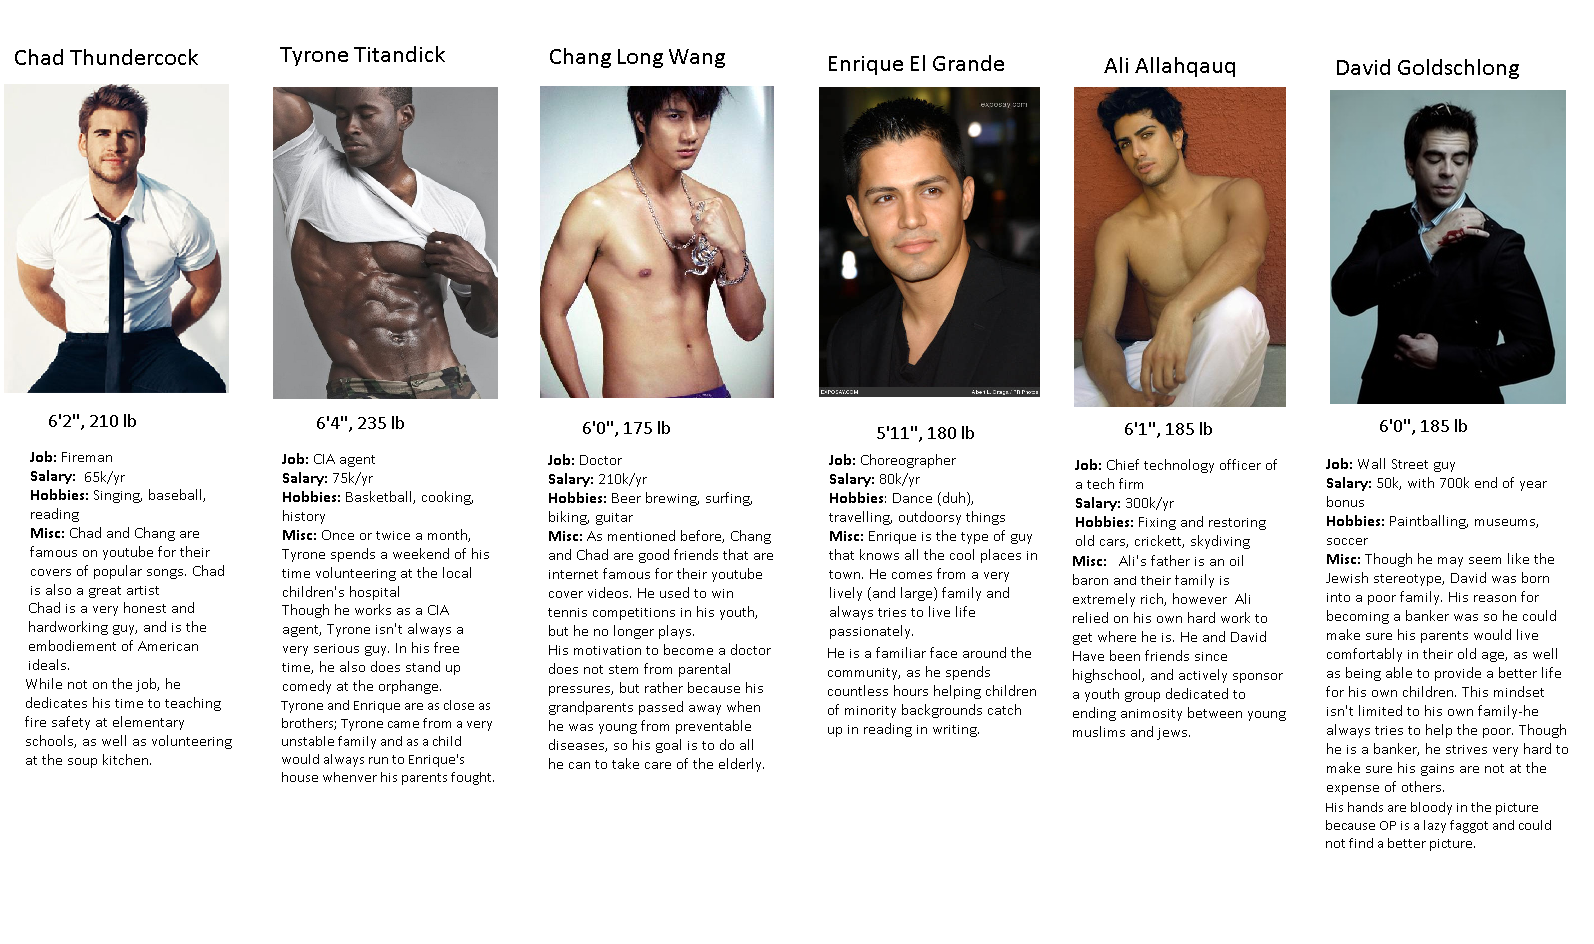 Chad Thundercock of each ethnicity